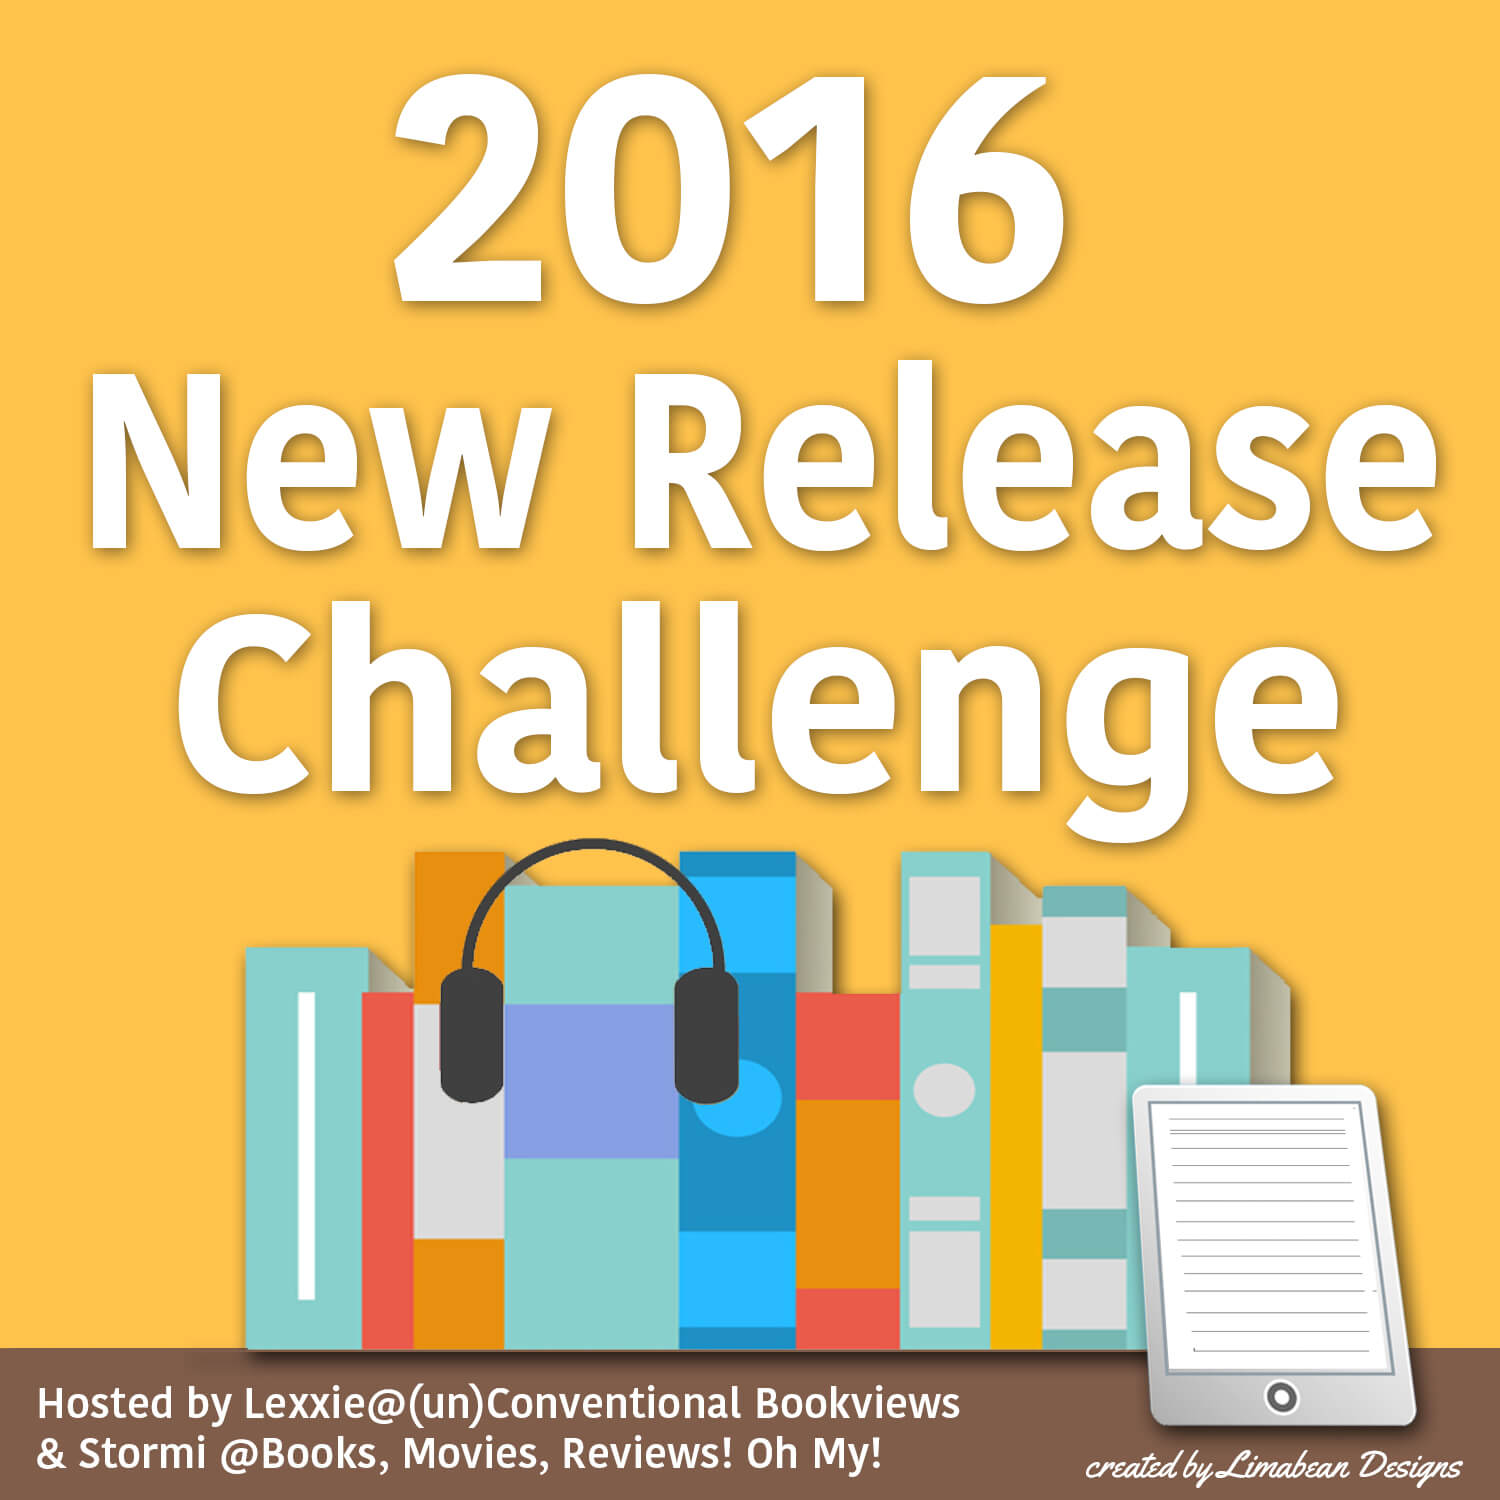 2016 new release challenge sign up books movies reviews oh my